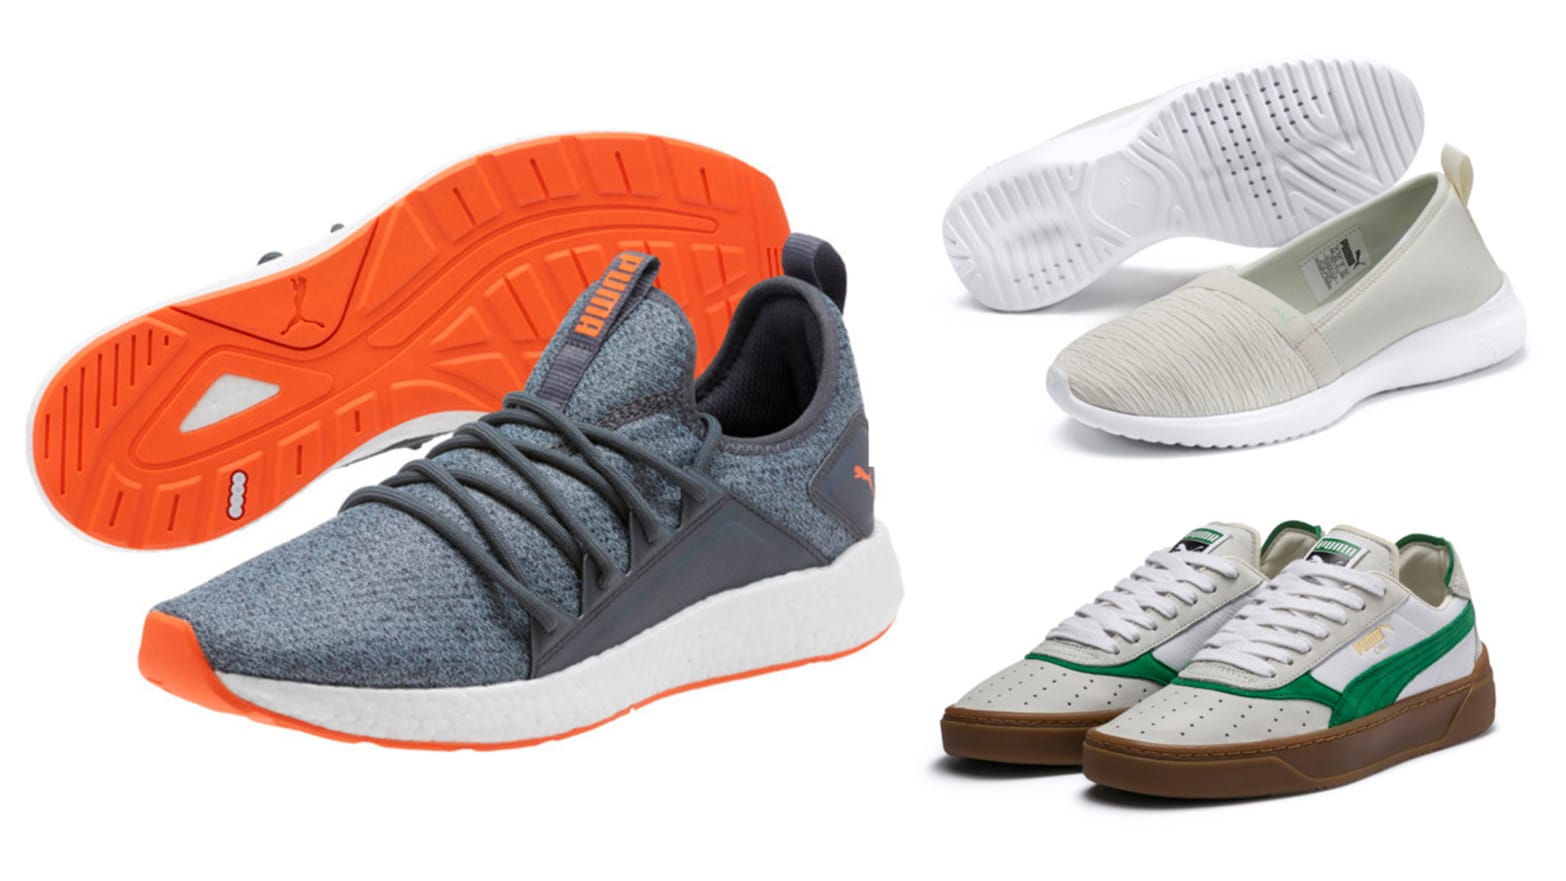 Get Early Access to PUMA's Semi-Annual Sale And Save Up to 40% Off